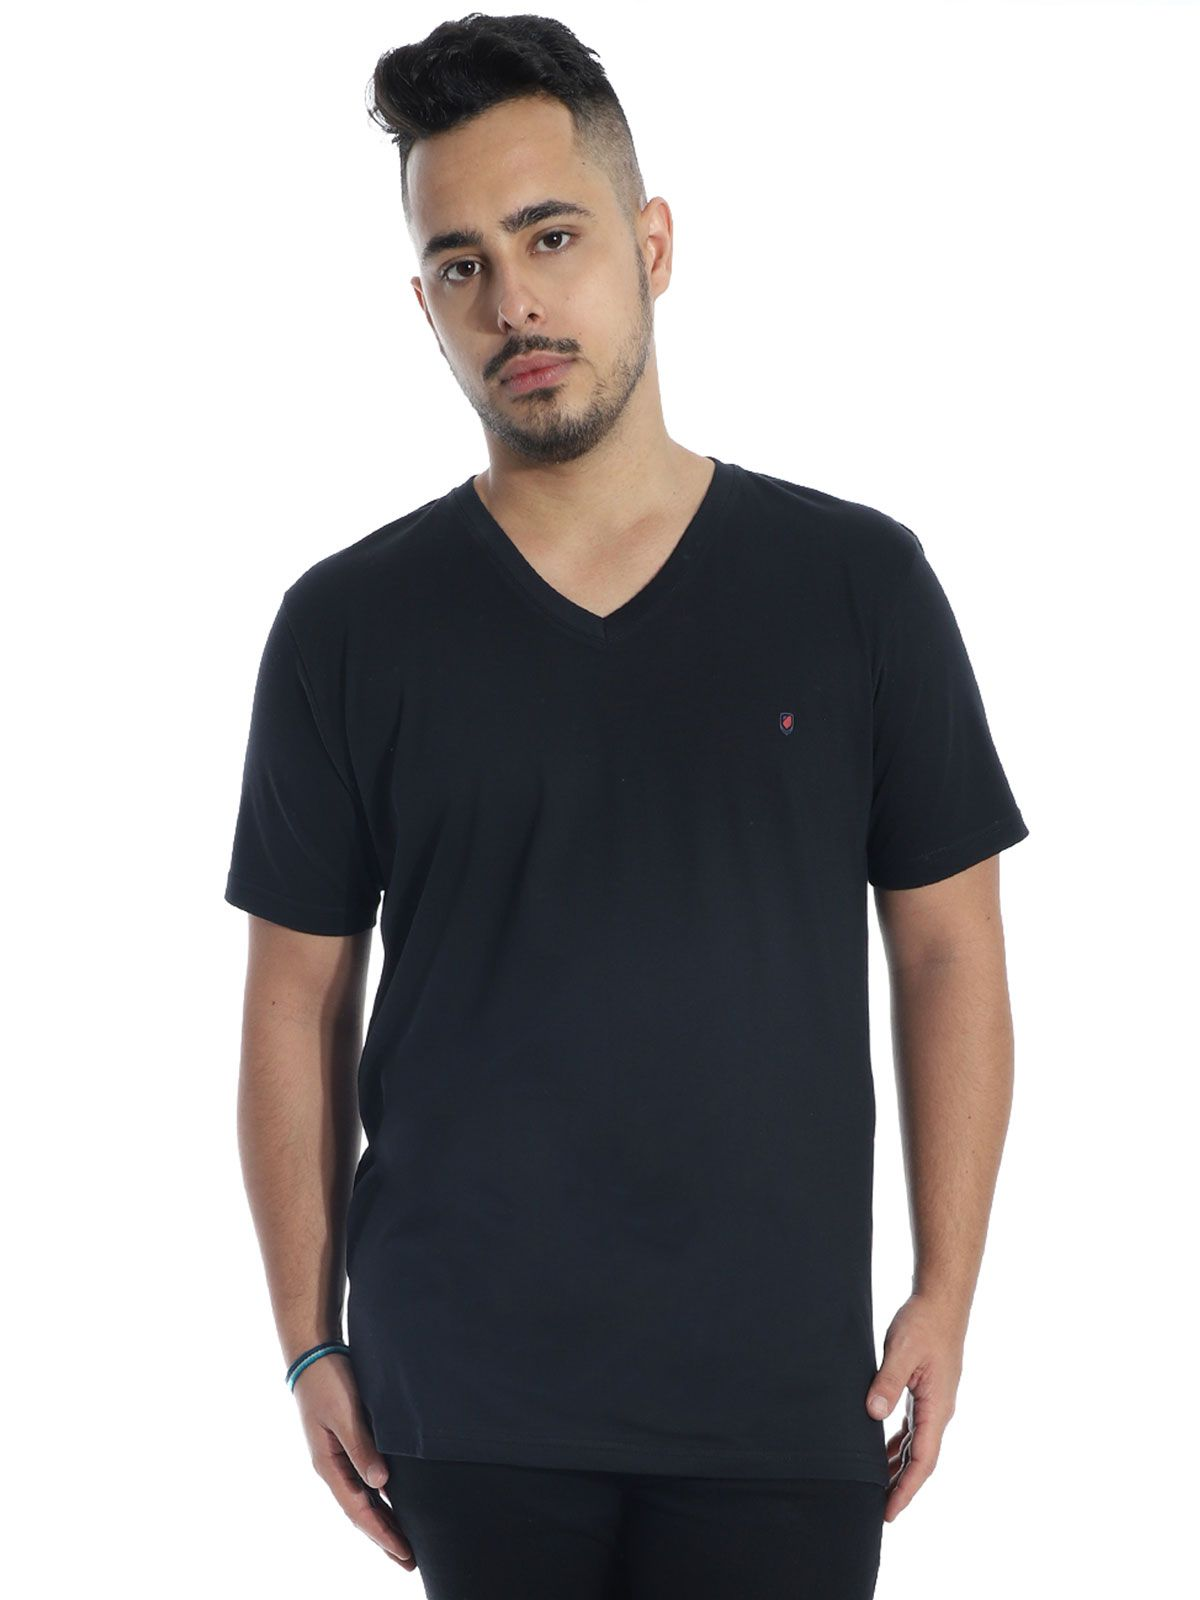 Camiseta Anistia Básica Decote V. Chest Preto